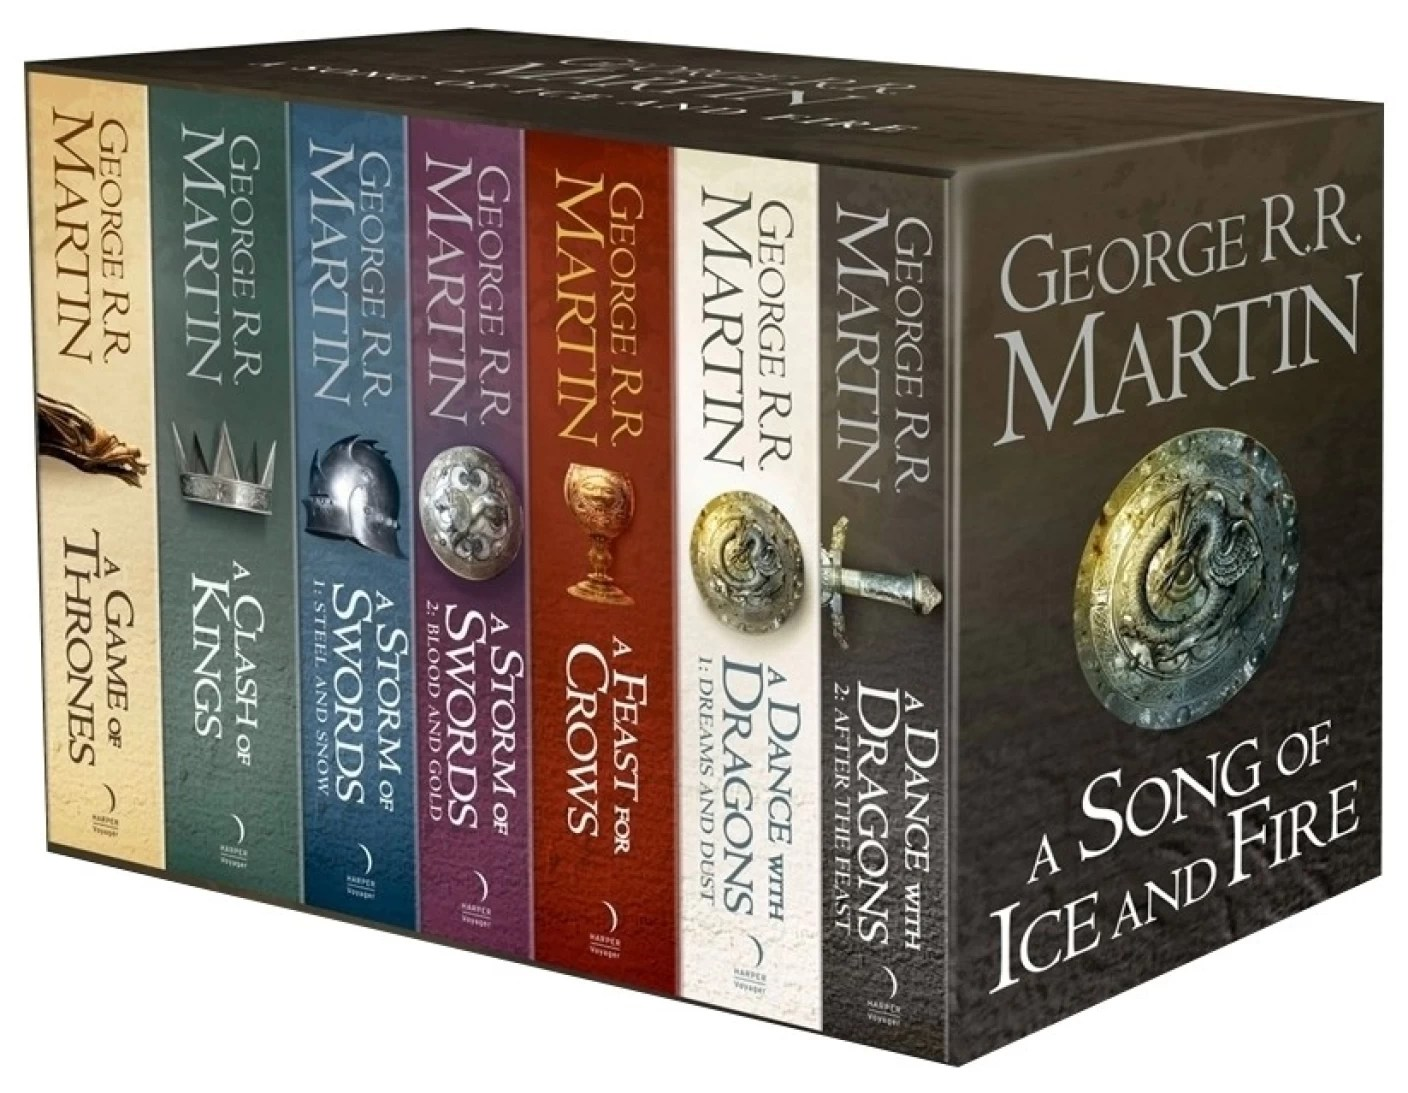 GAME OF THRONES: THE STORY CONTINUES: 7 Book Boxset - Buy GAME OF THRONES: THE STORY CONTINUES ...